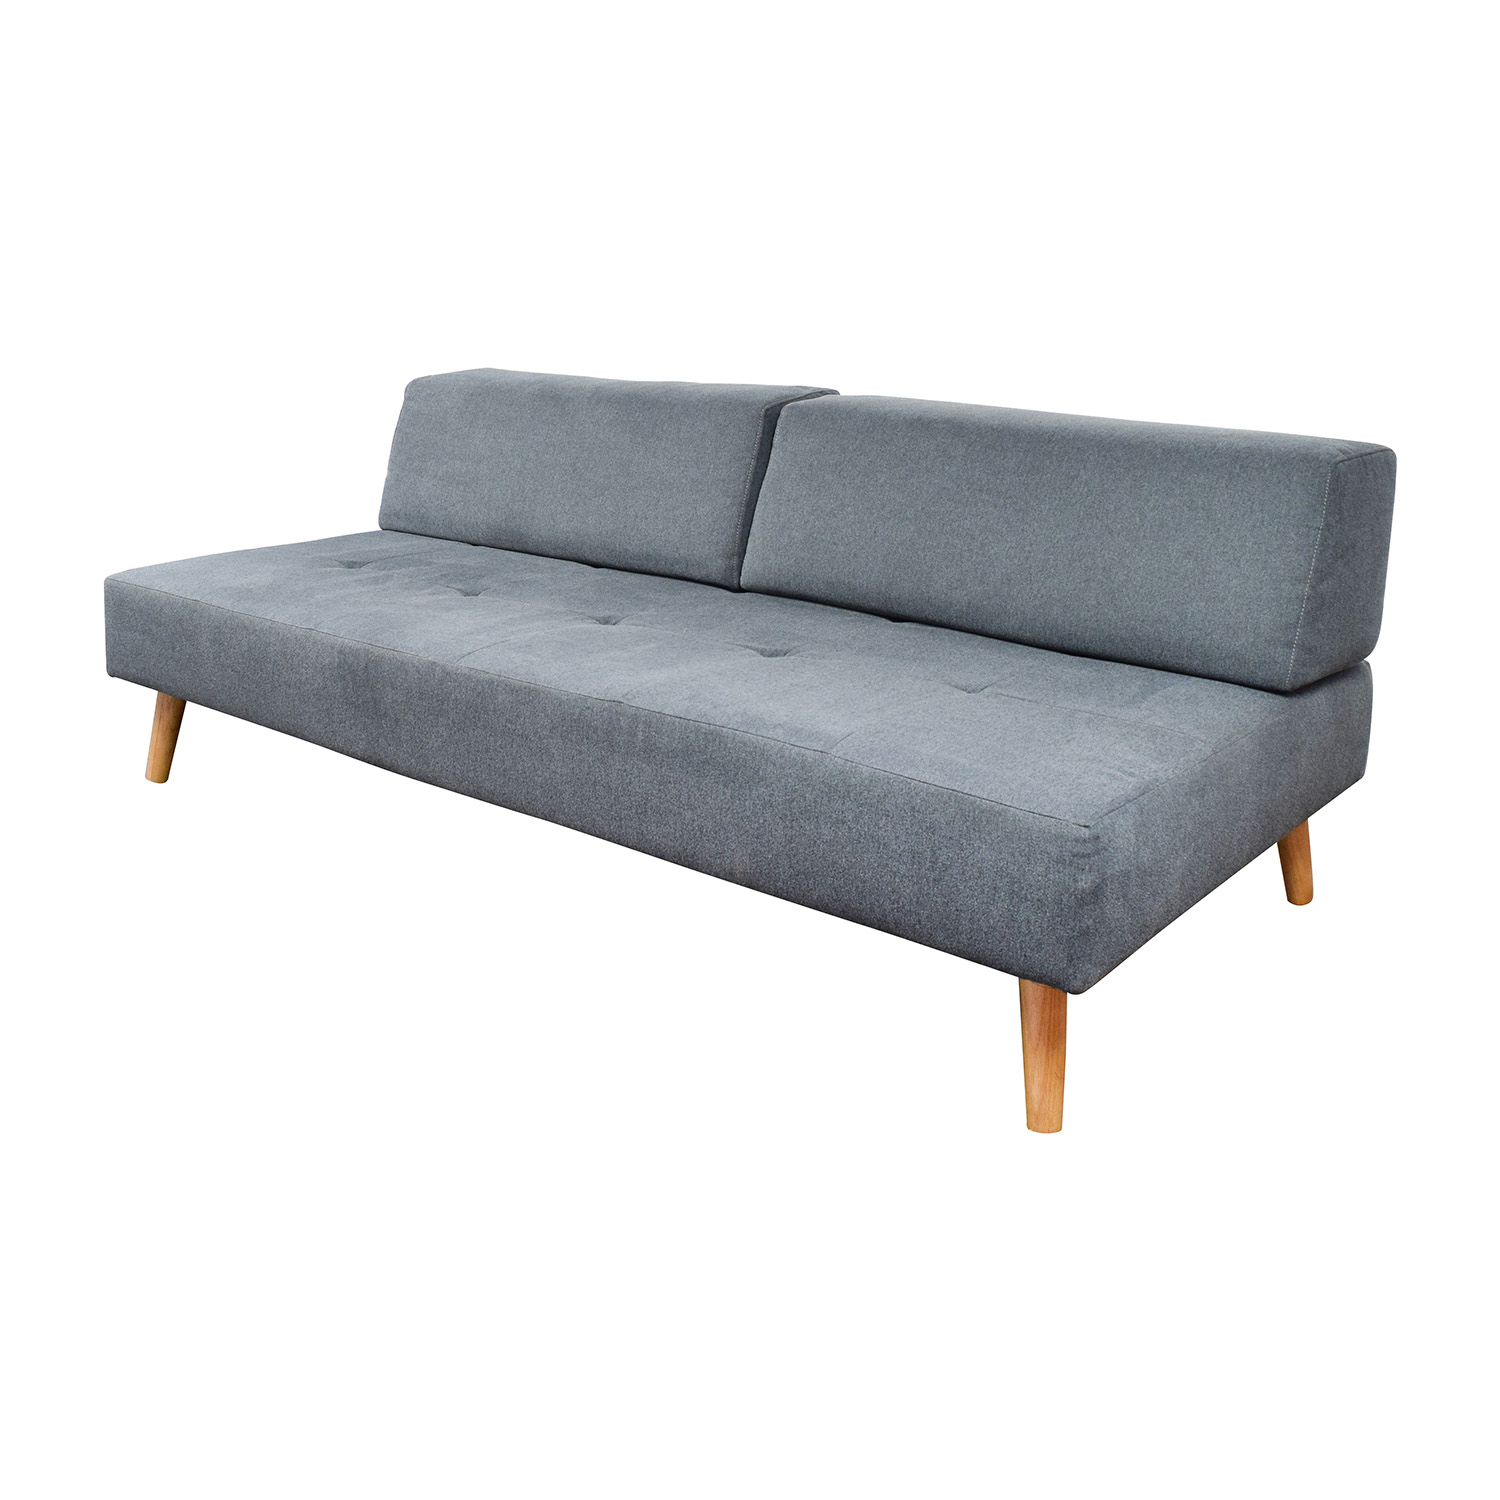 westelm sofa bed luxe bobs 34 off west elm retro tillary sofas